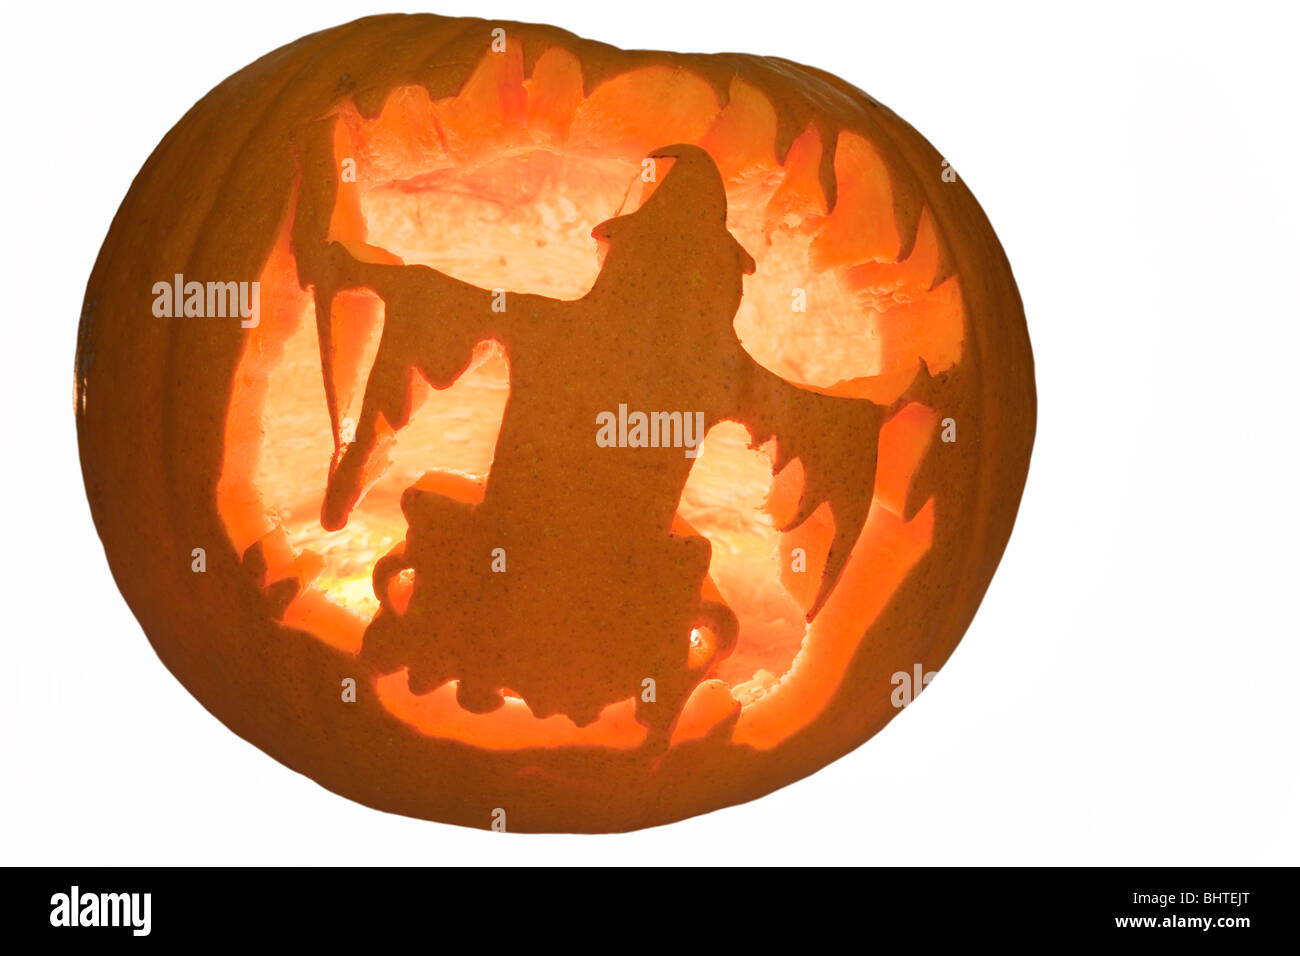 Scary Halloween pumpkin lantern with carved witch shape and illuminated with a candle glowing inside - Stock Image